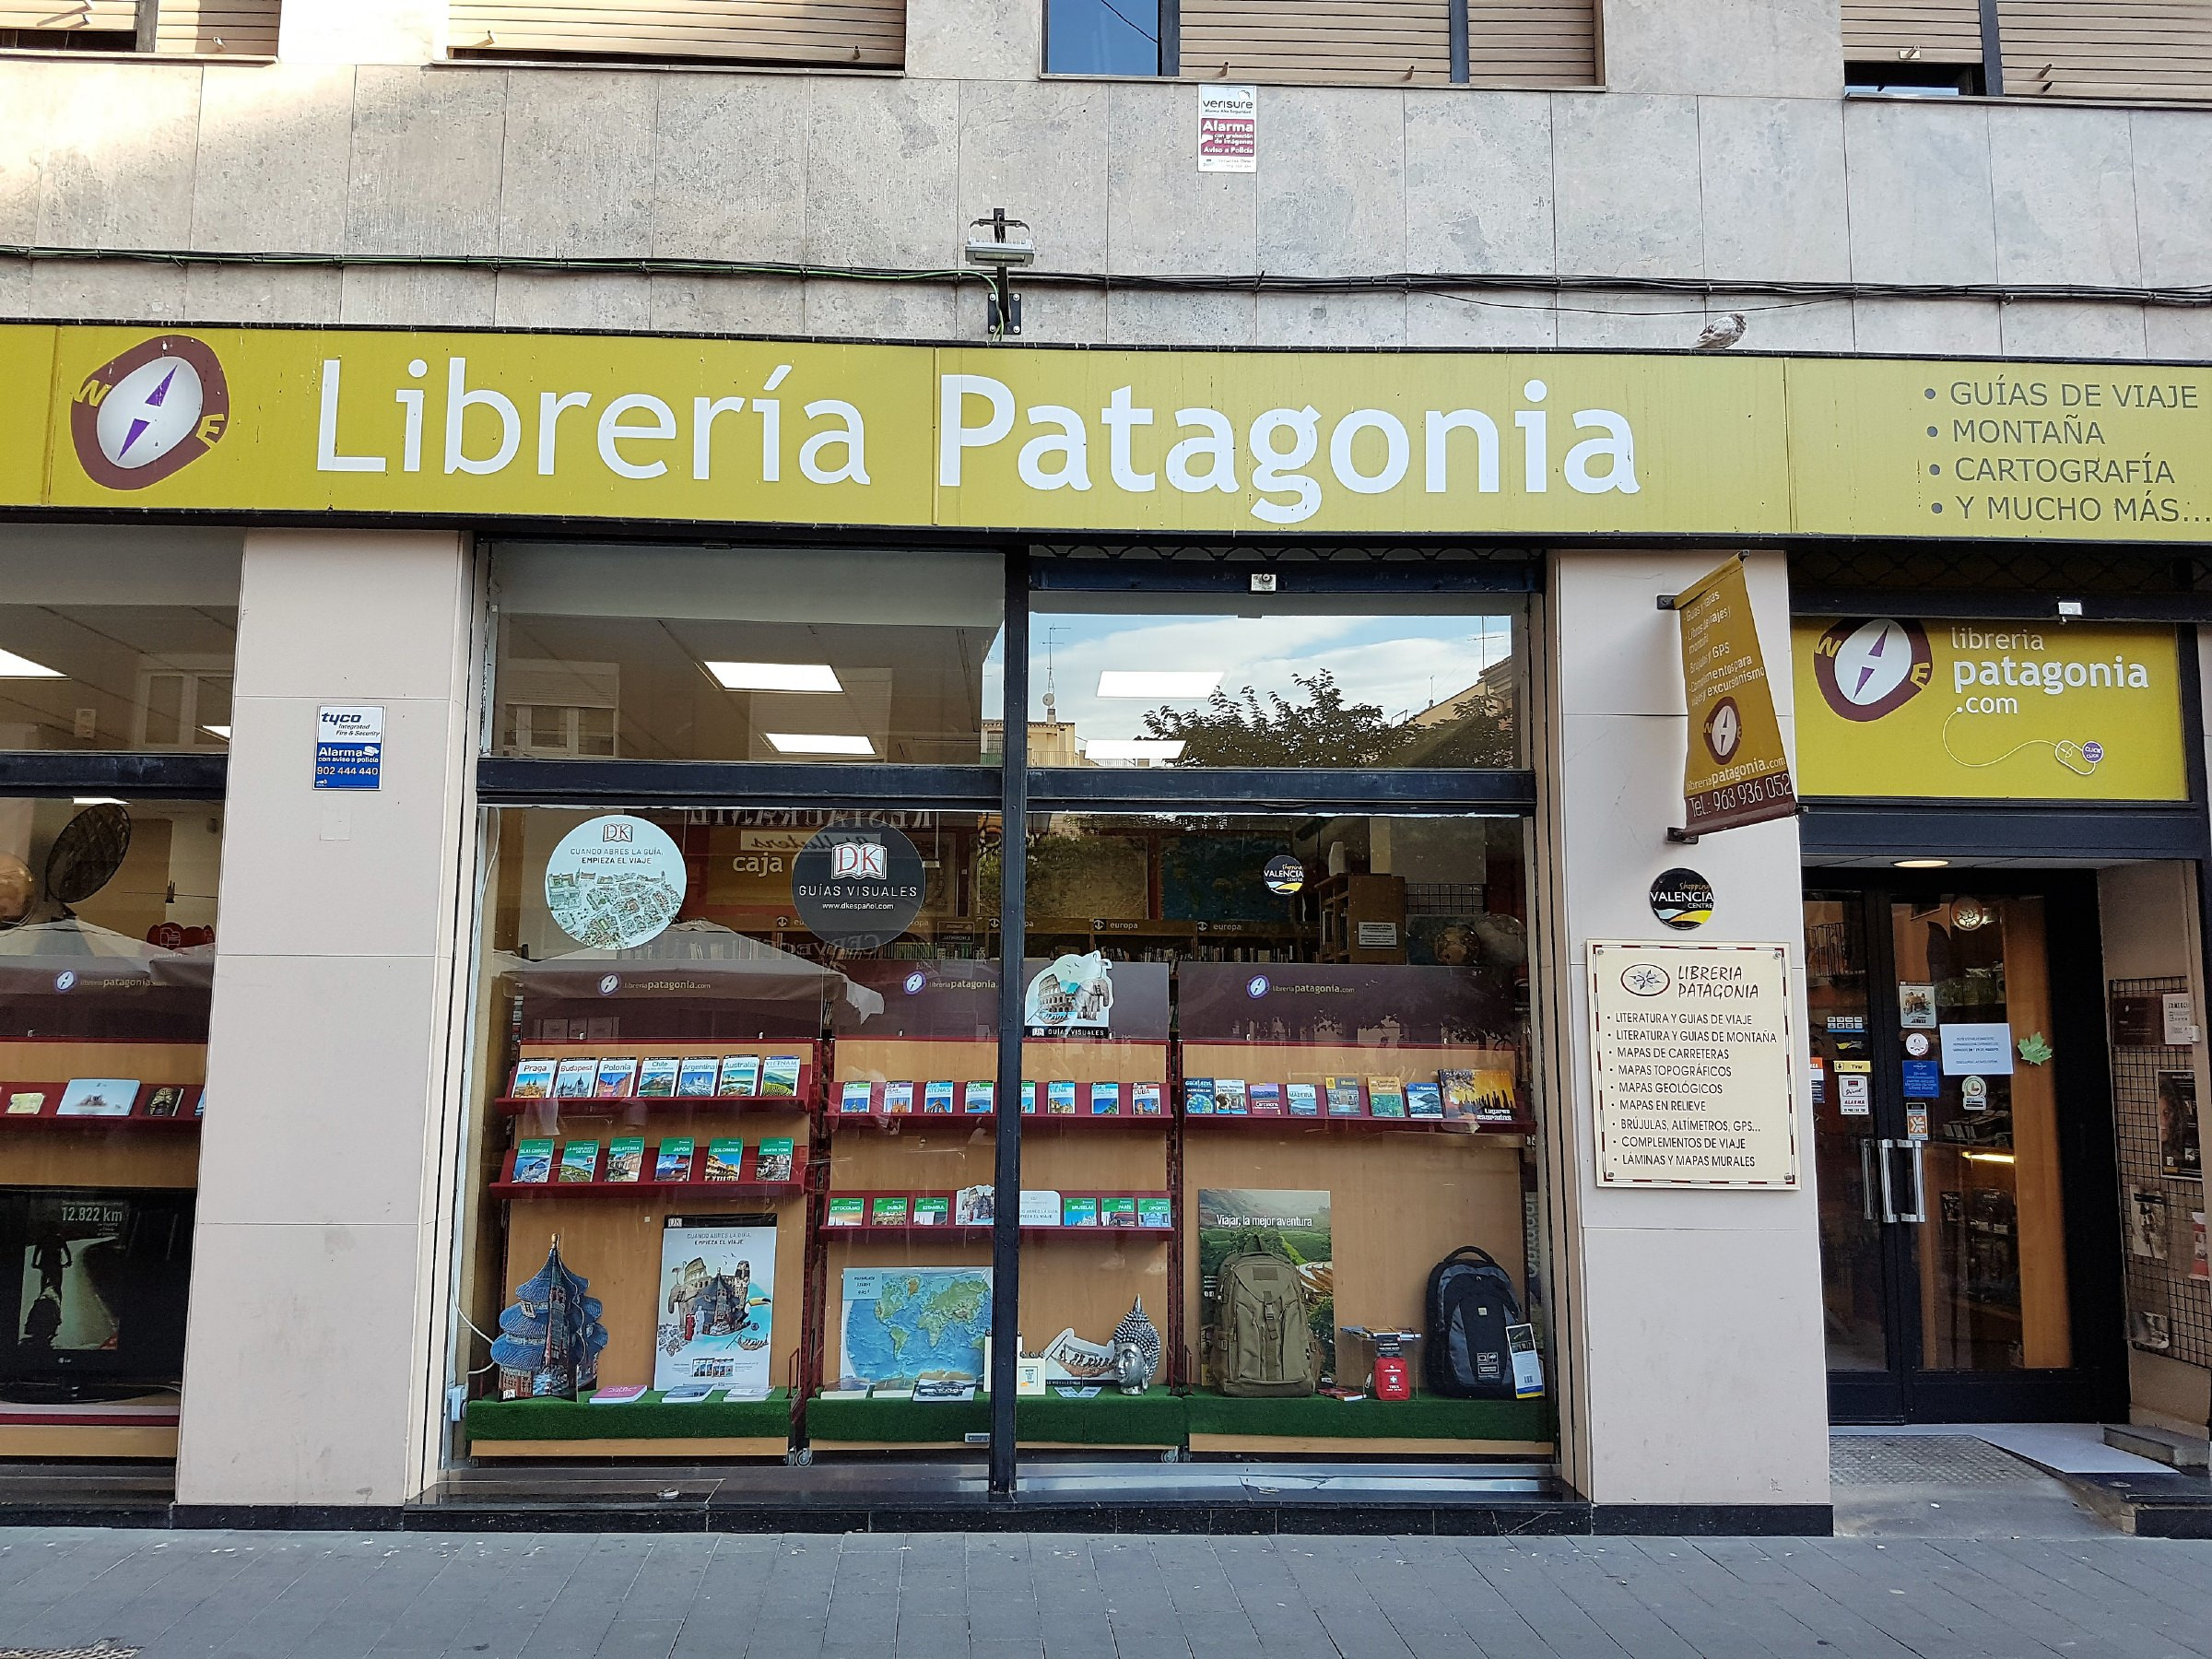 Libreria Soriano Librería Patagonia Valencia Spain Shopping Lonely Planet